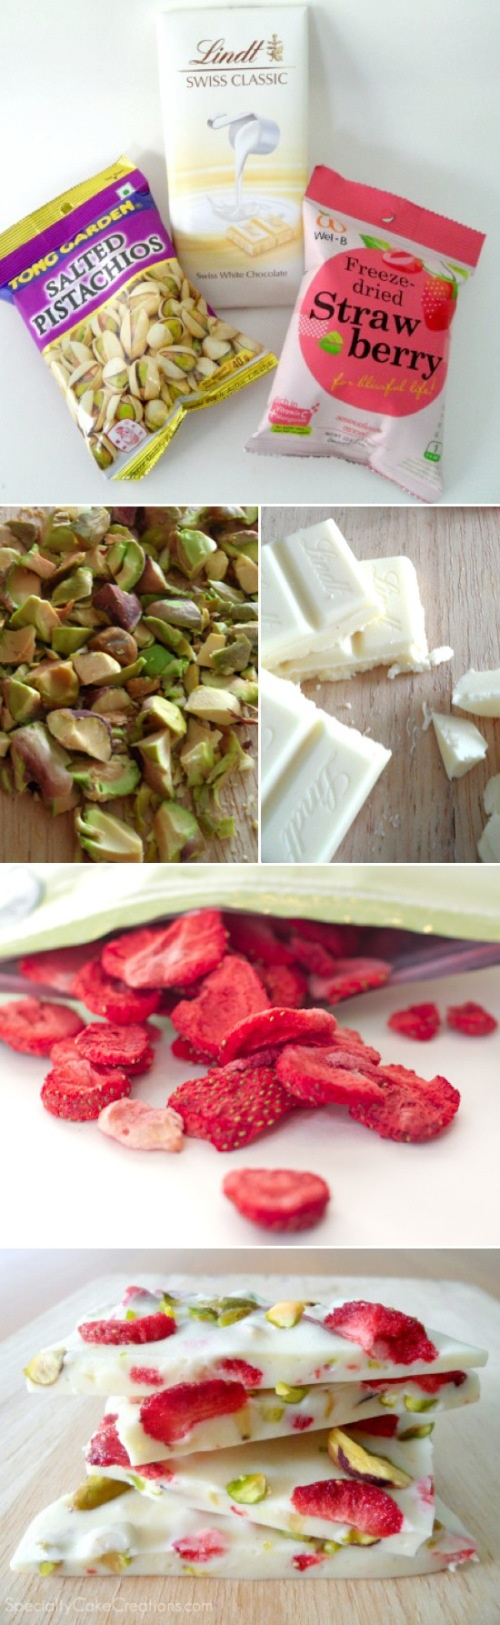 Strawberry-Pistachio-White-Chocolate-Bar Recipe By Cupcakepedia, strawberry, white chocolate, pistachio,food, dessert